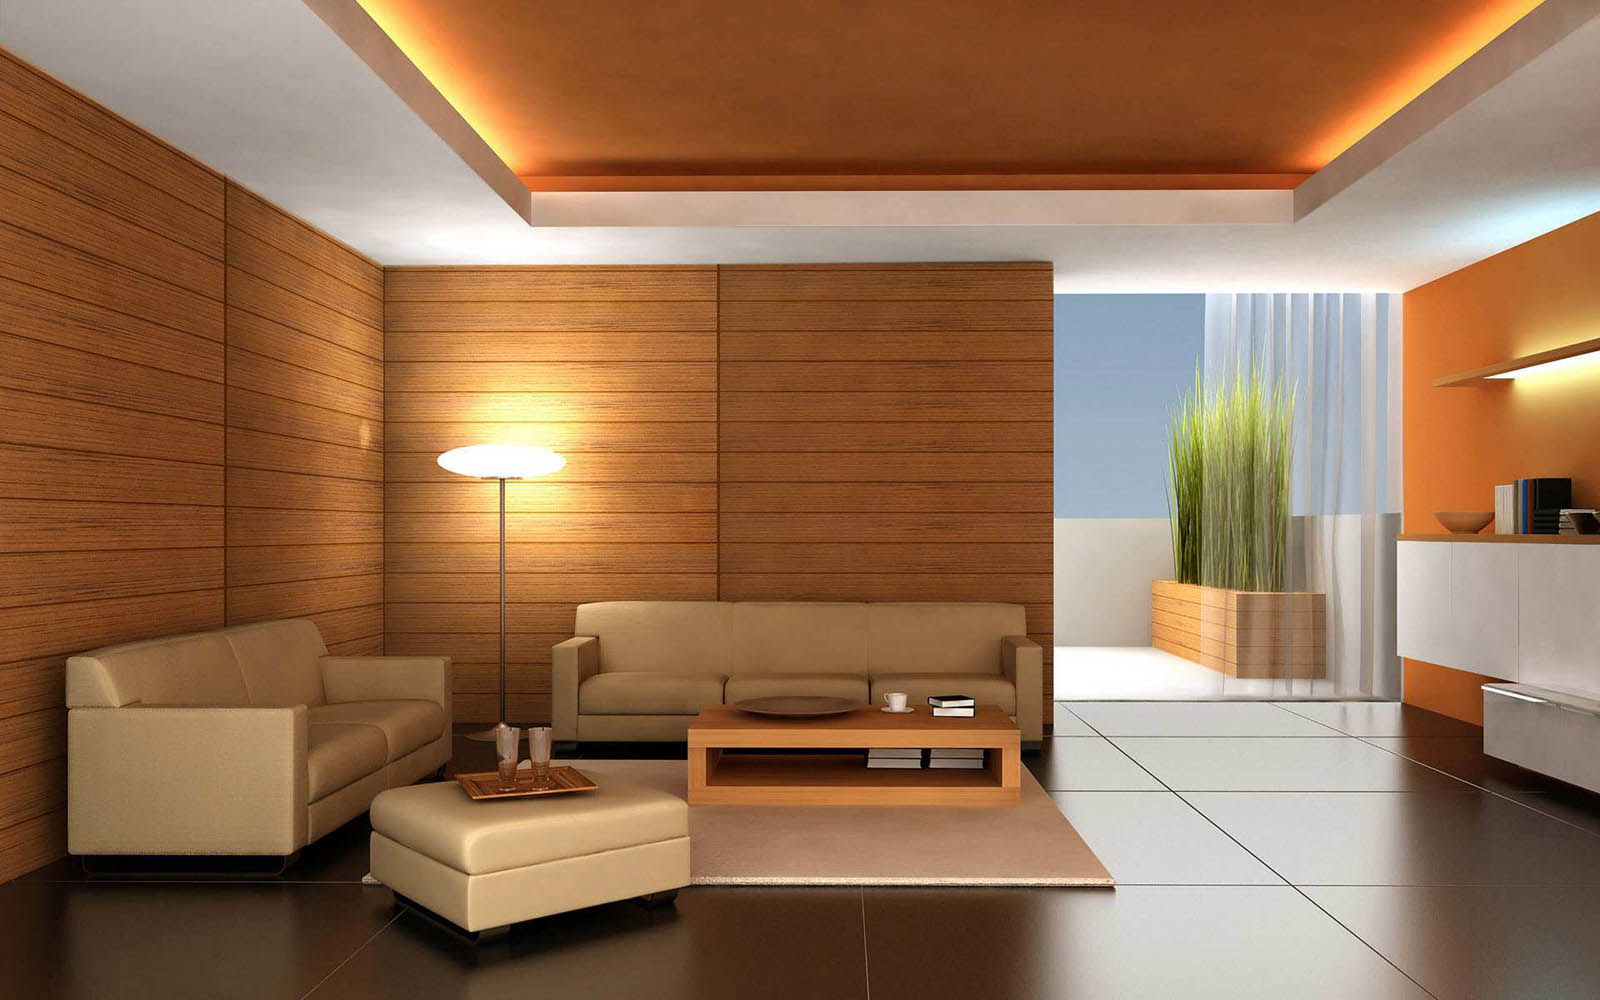 Wallpaper modern living room paos for Wallpaper for the room